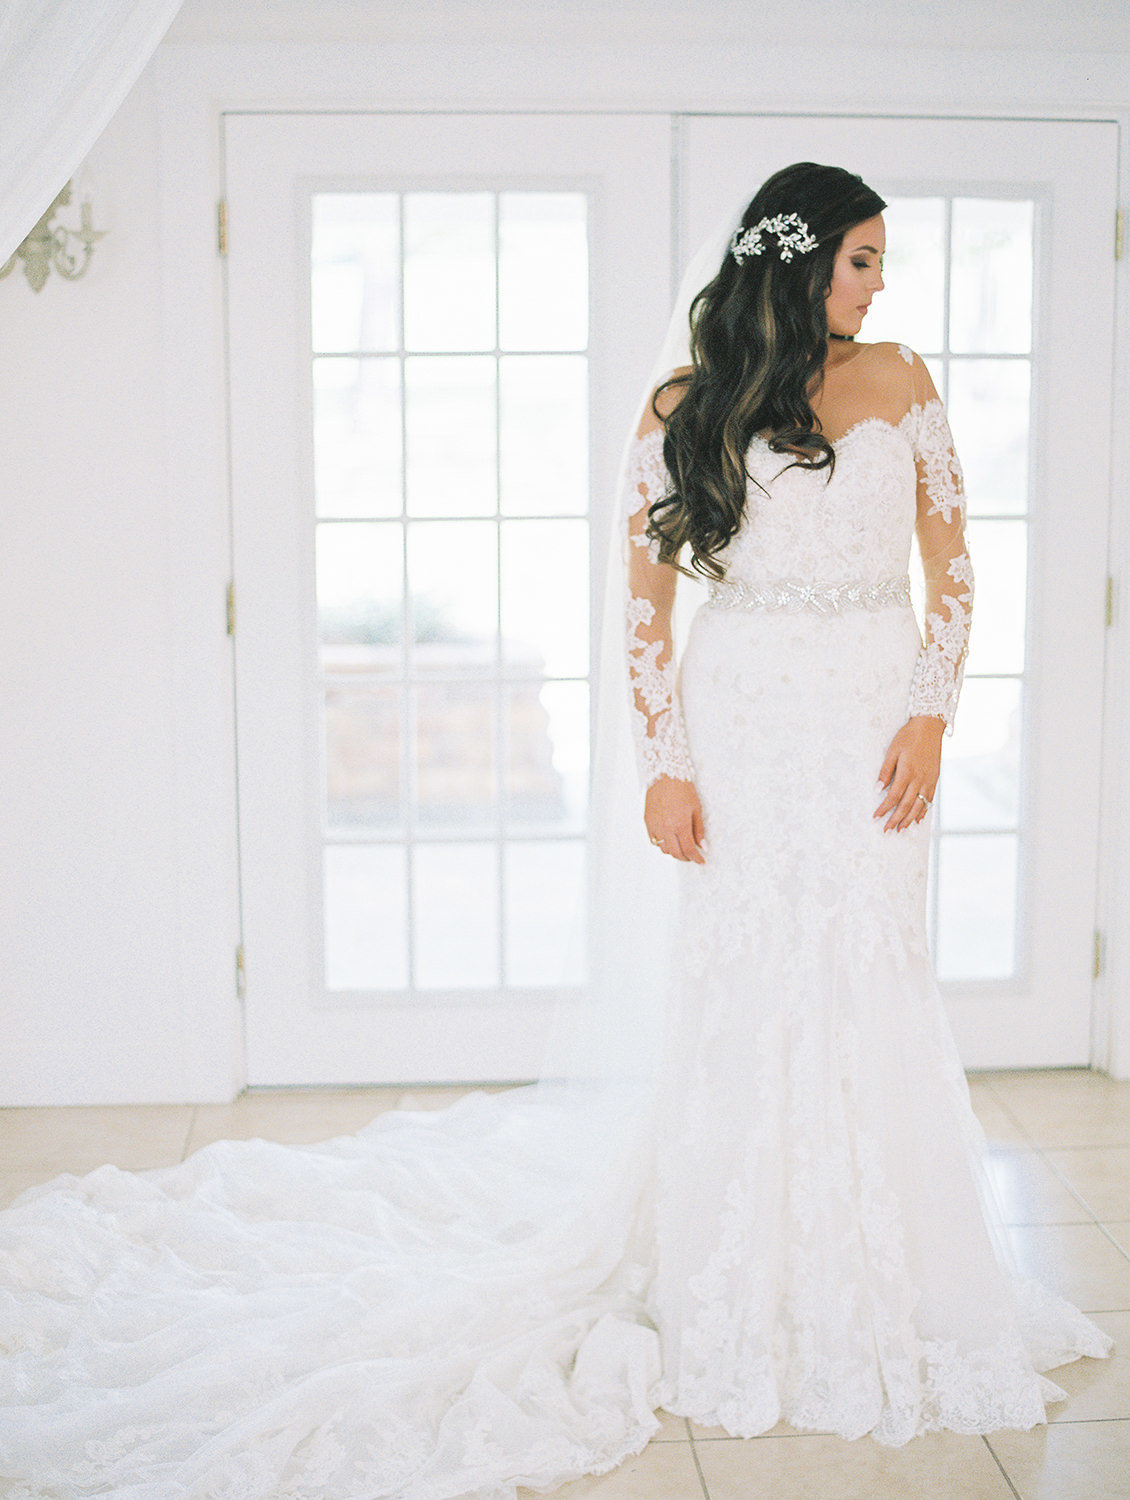 Bride dressed in lace wedding gown